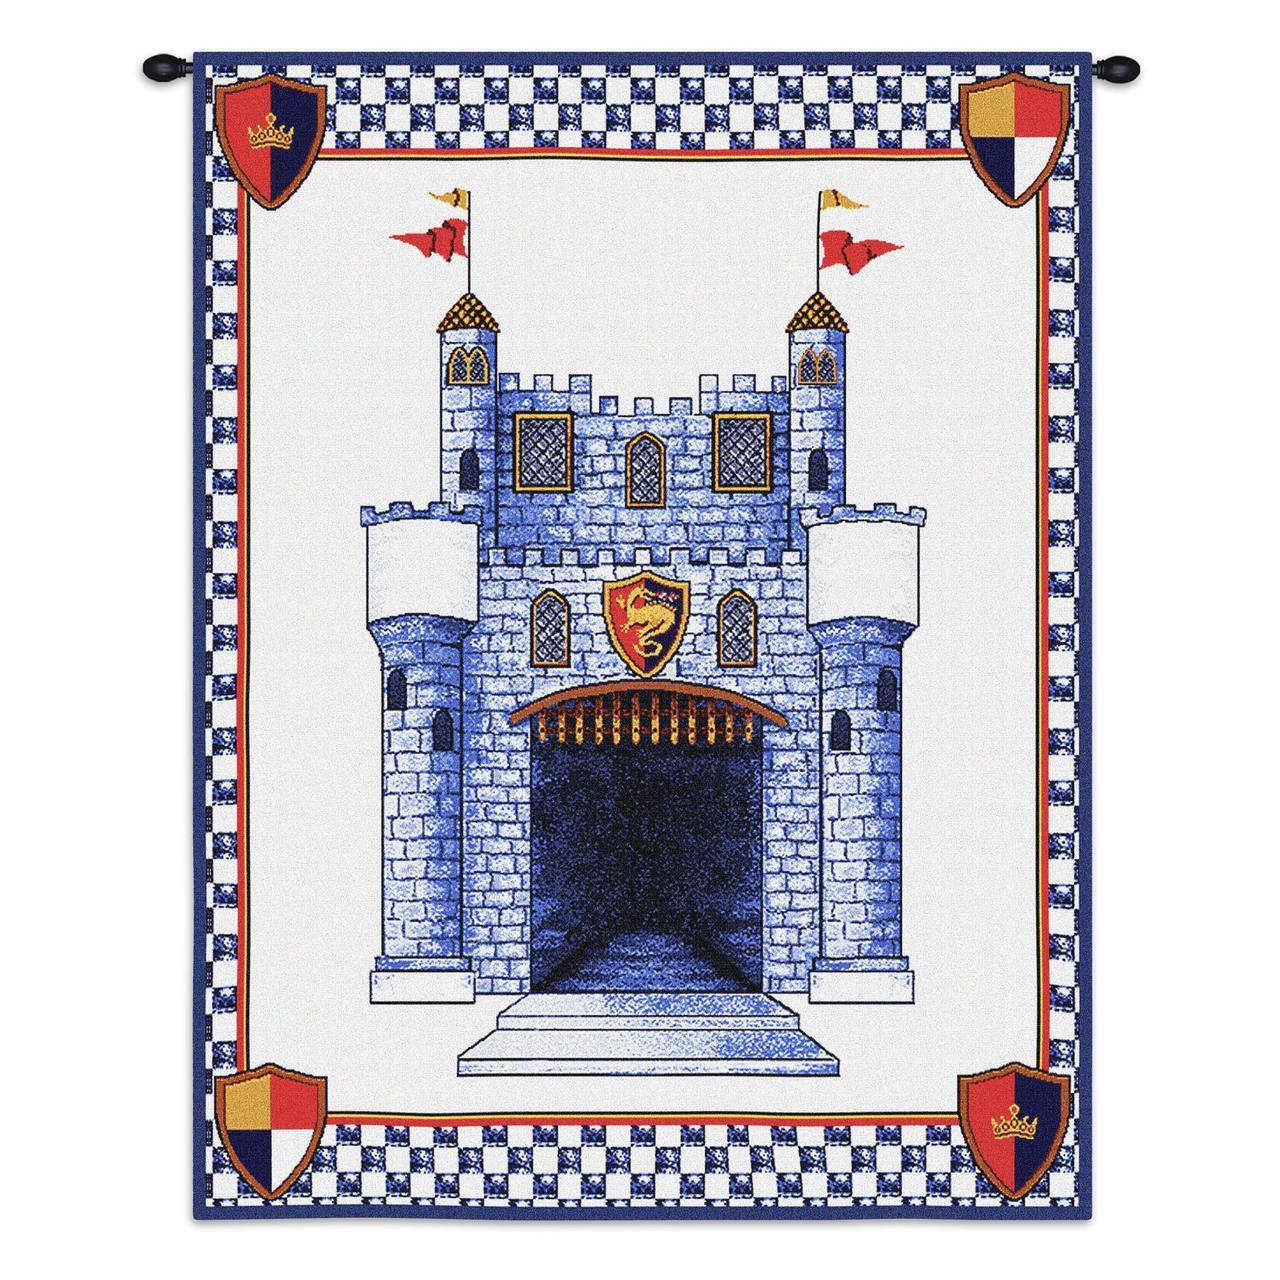 Tapestry-Wall Hanging-26 x 33-Babies-Children-Pink-Blue-Castle Wall